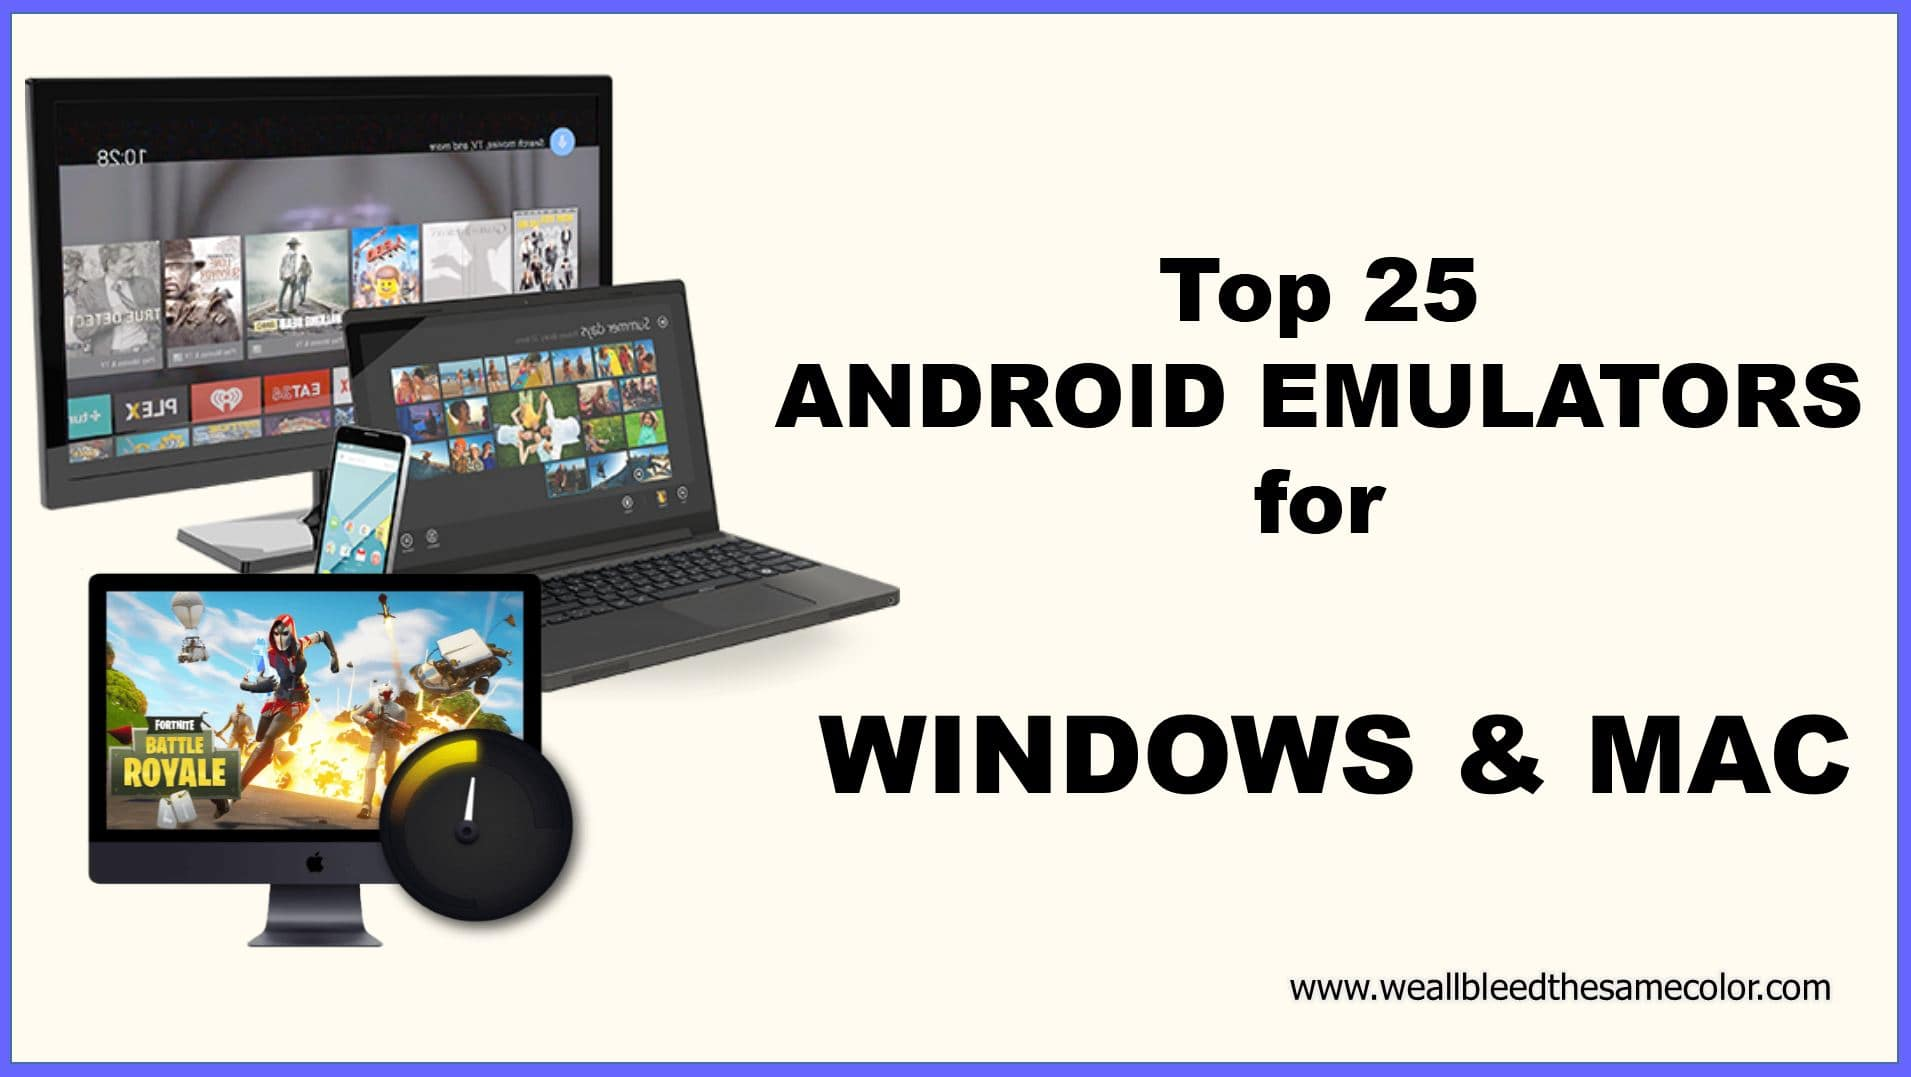 25 TOP ANDROID EMULATORS FOR WINDOWS PC AND MAC IN 2020